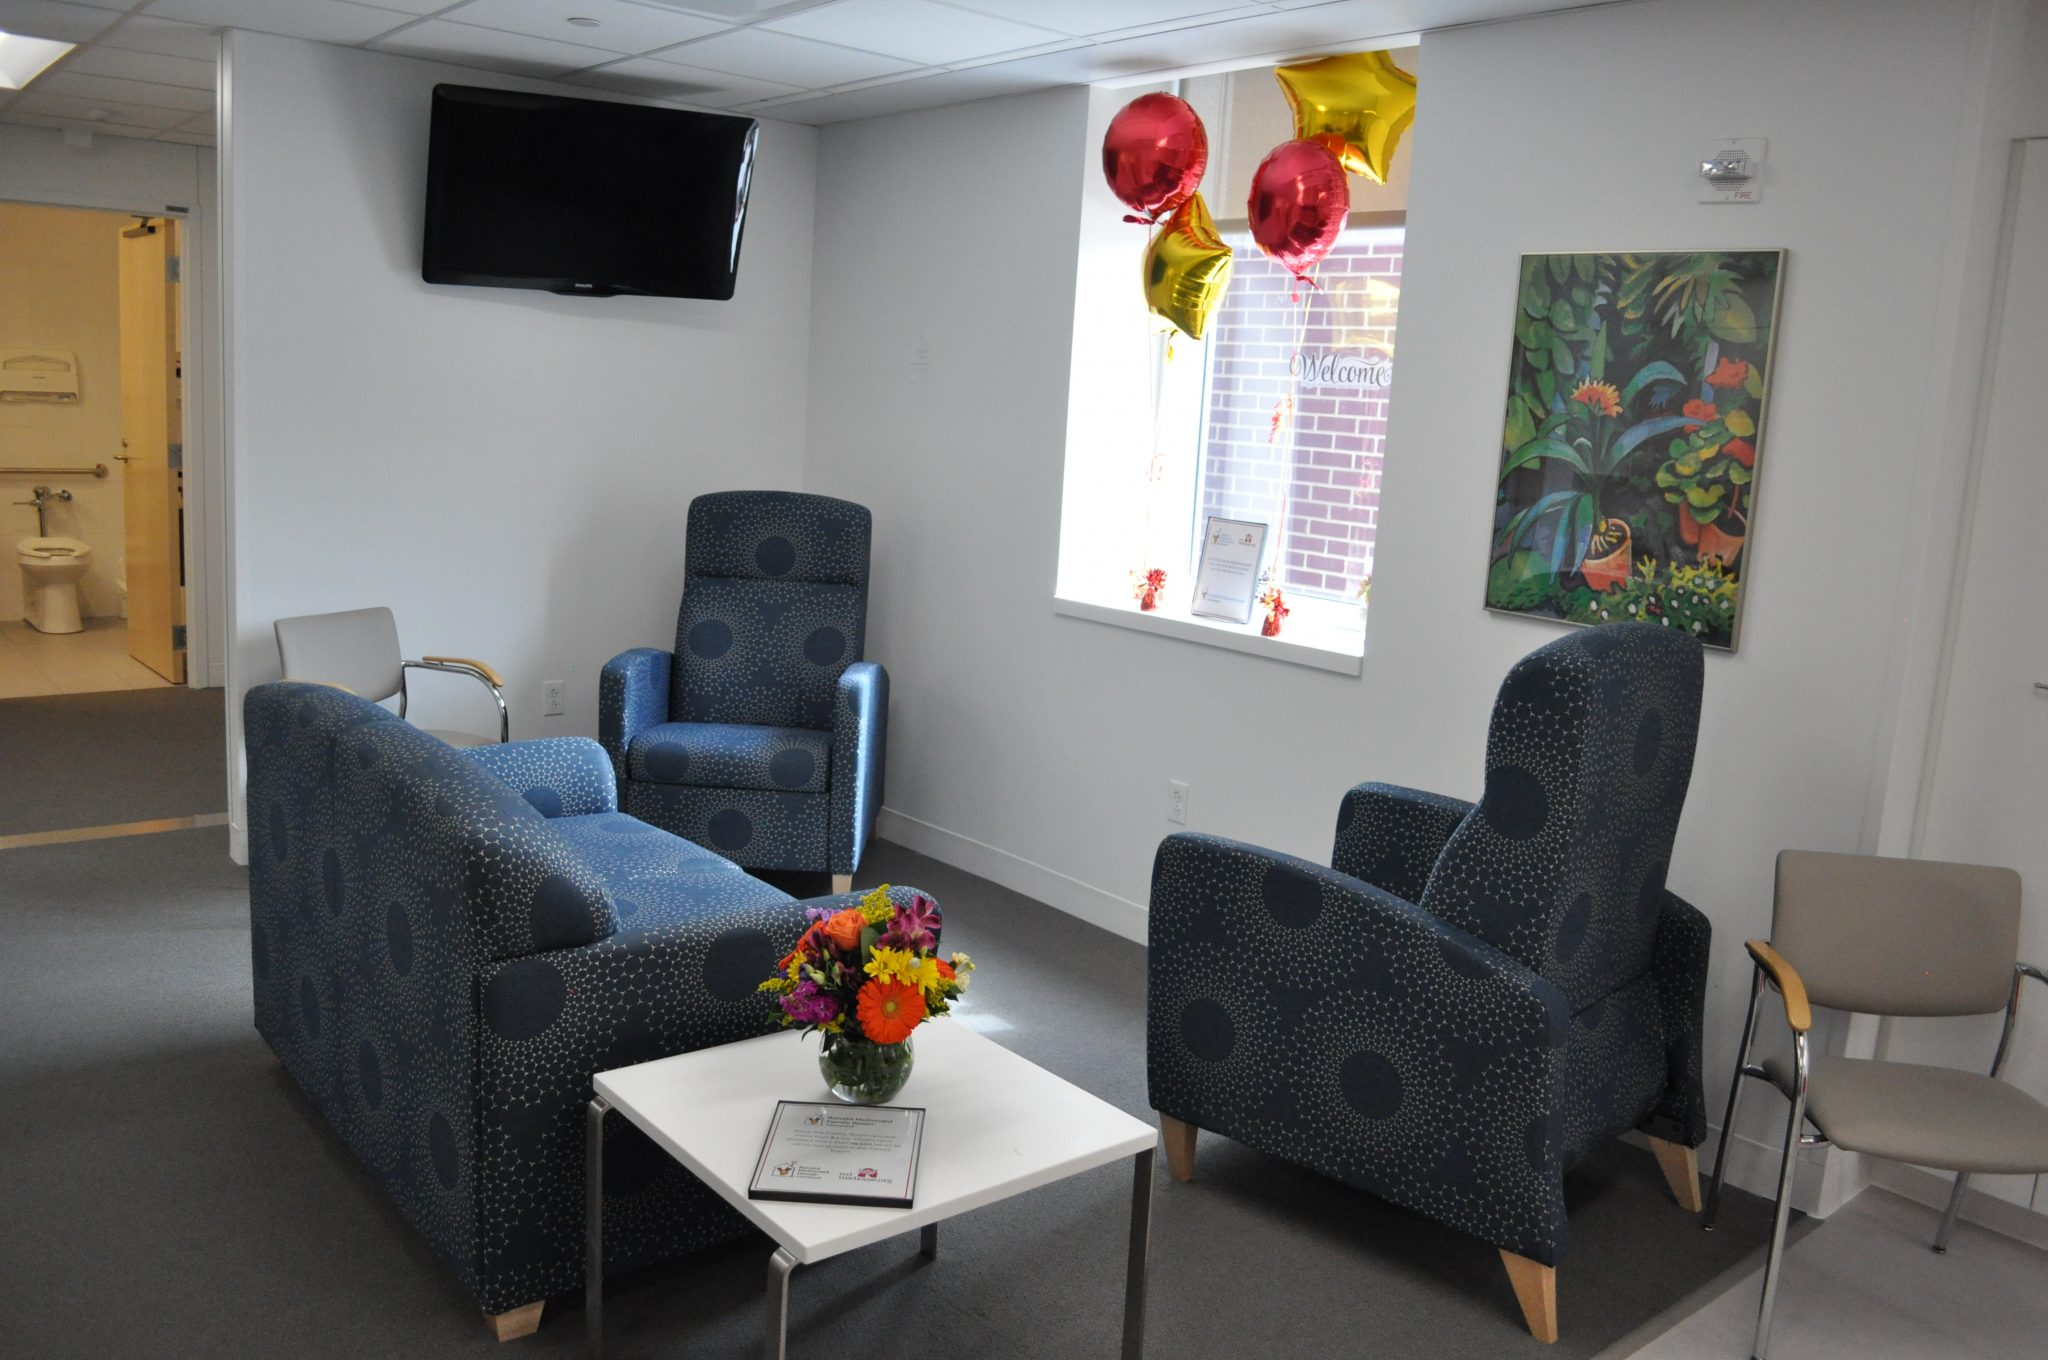 Seating area at the Fairview Family Room